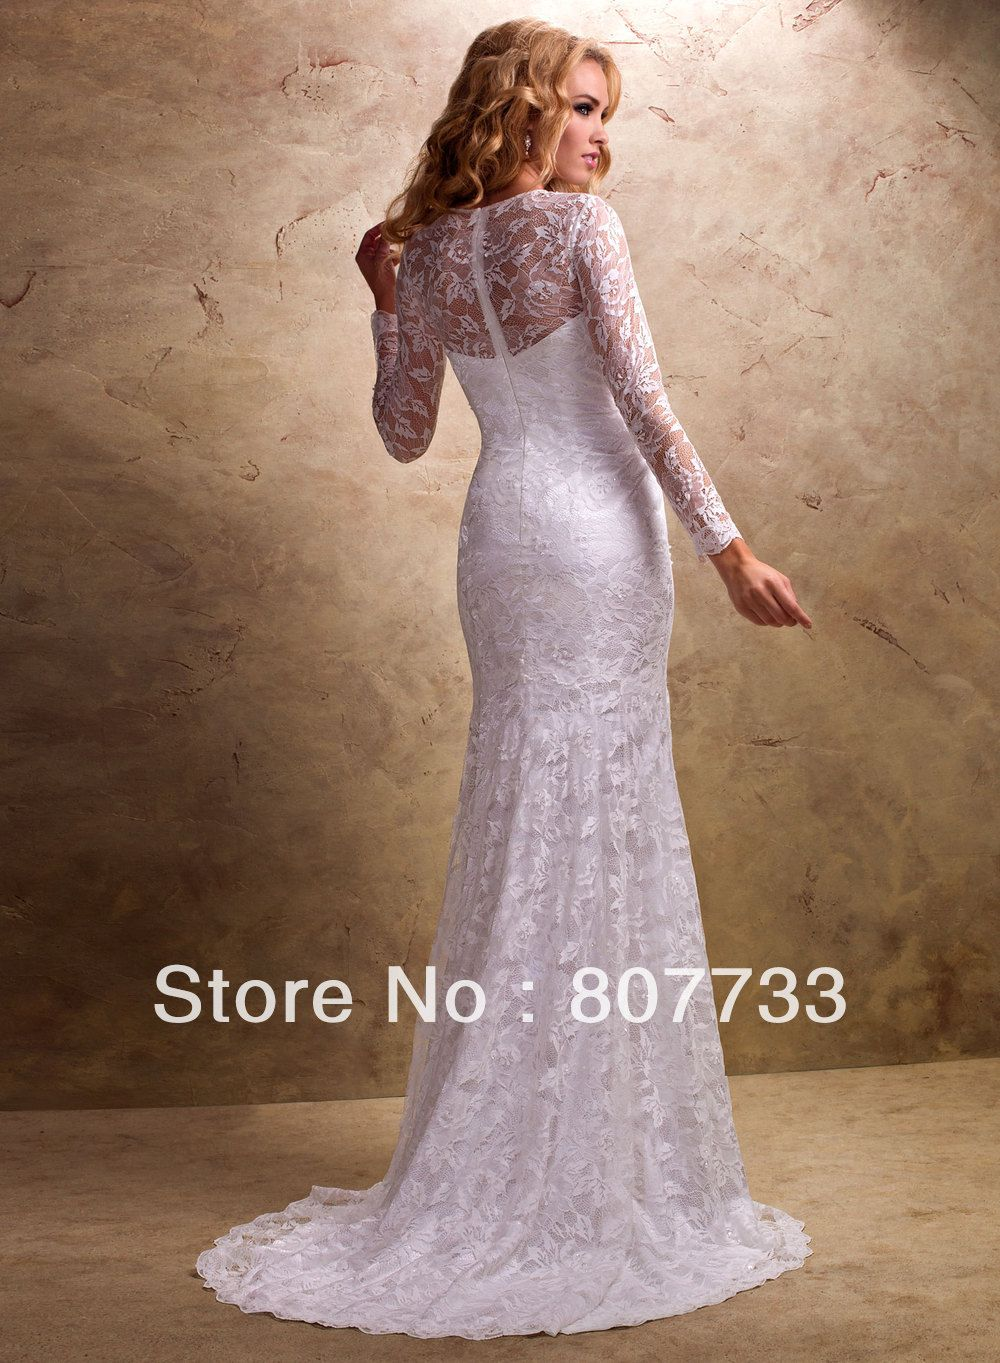 Lace wedding dress with sleeves wedding ideas pinterest lace